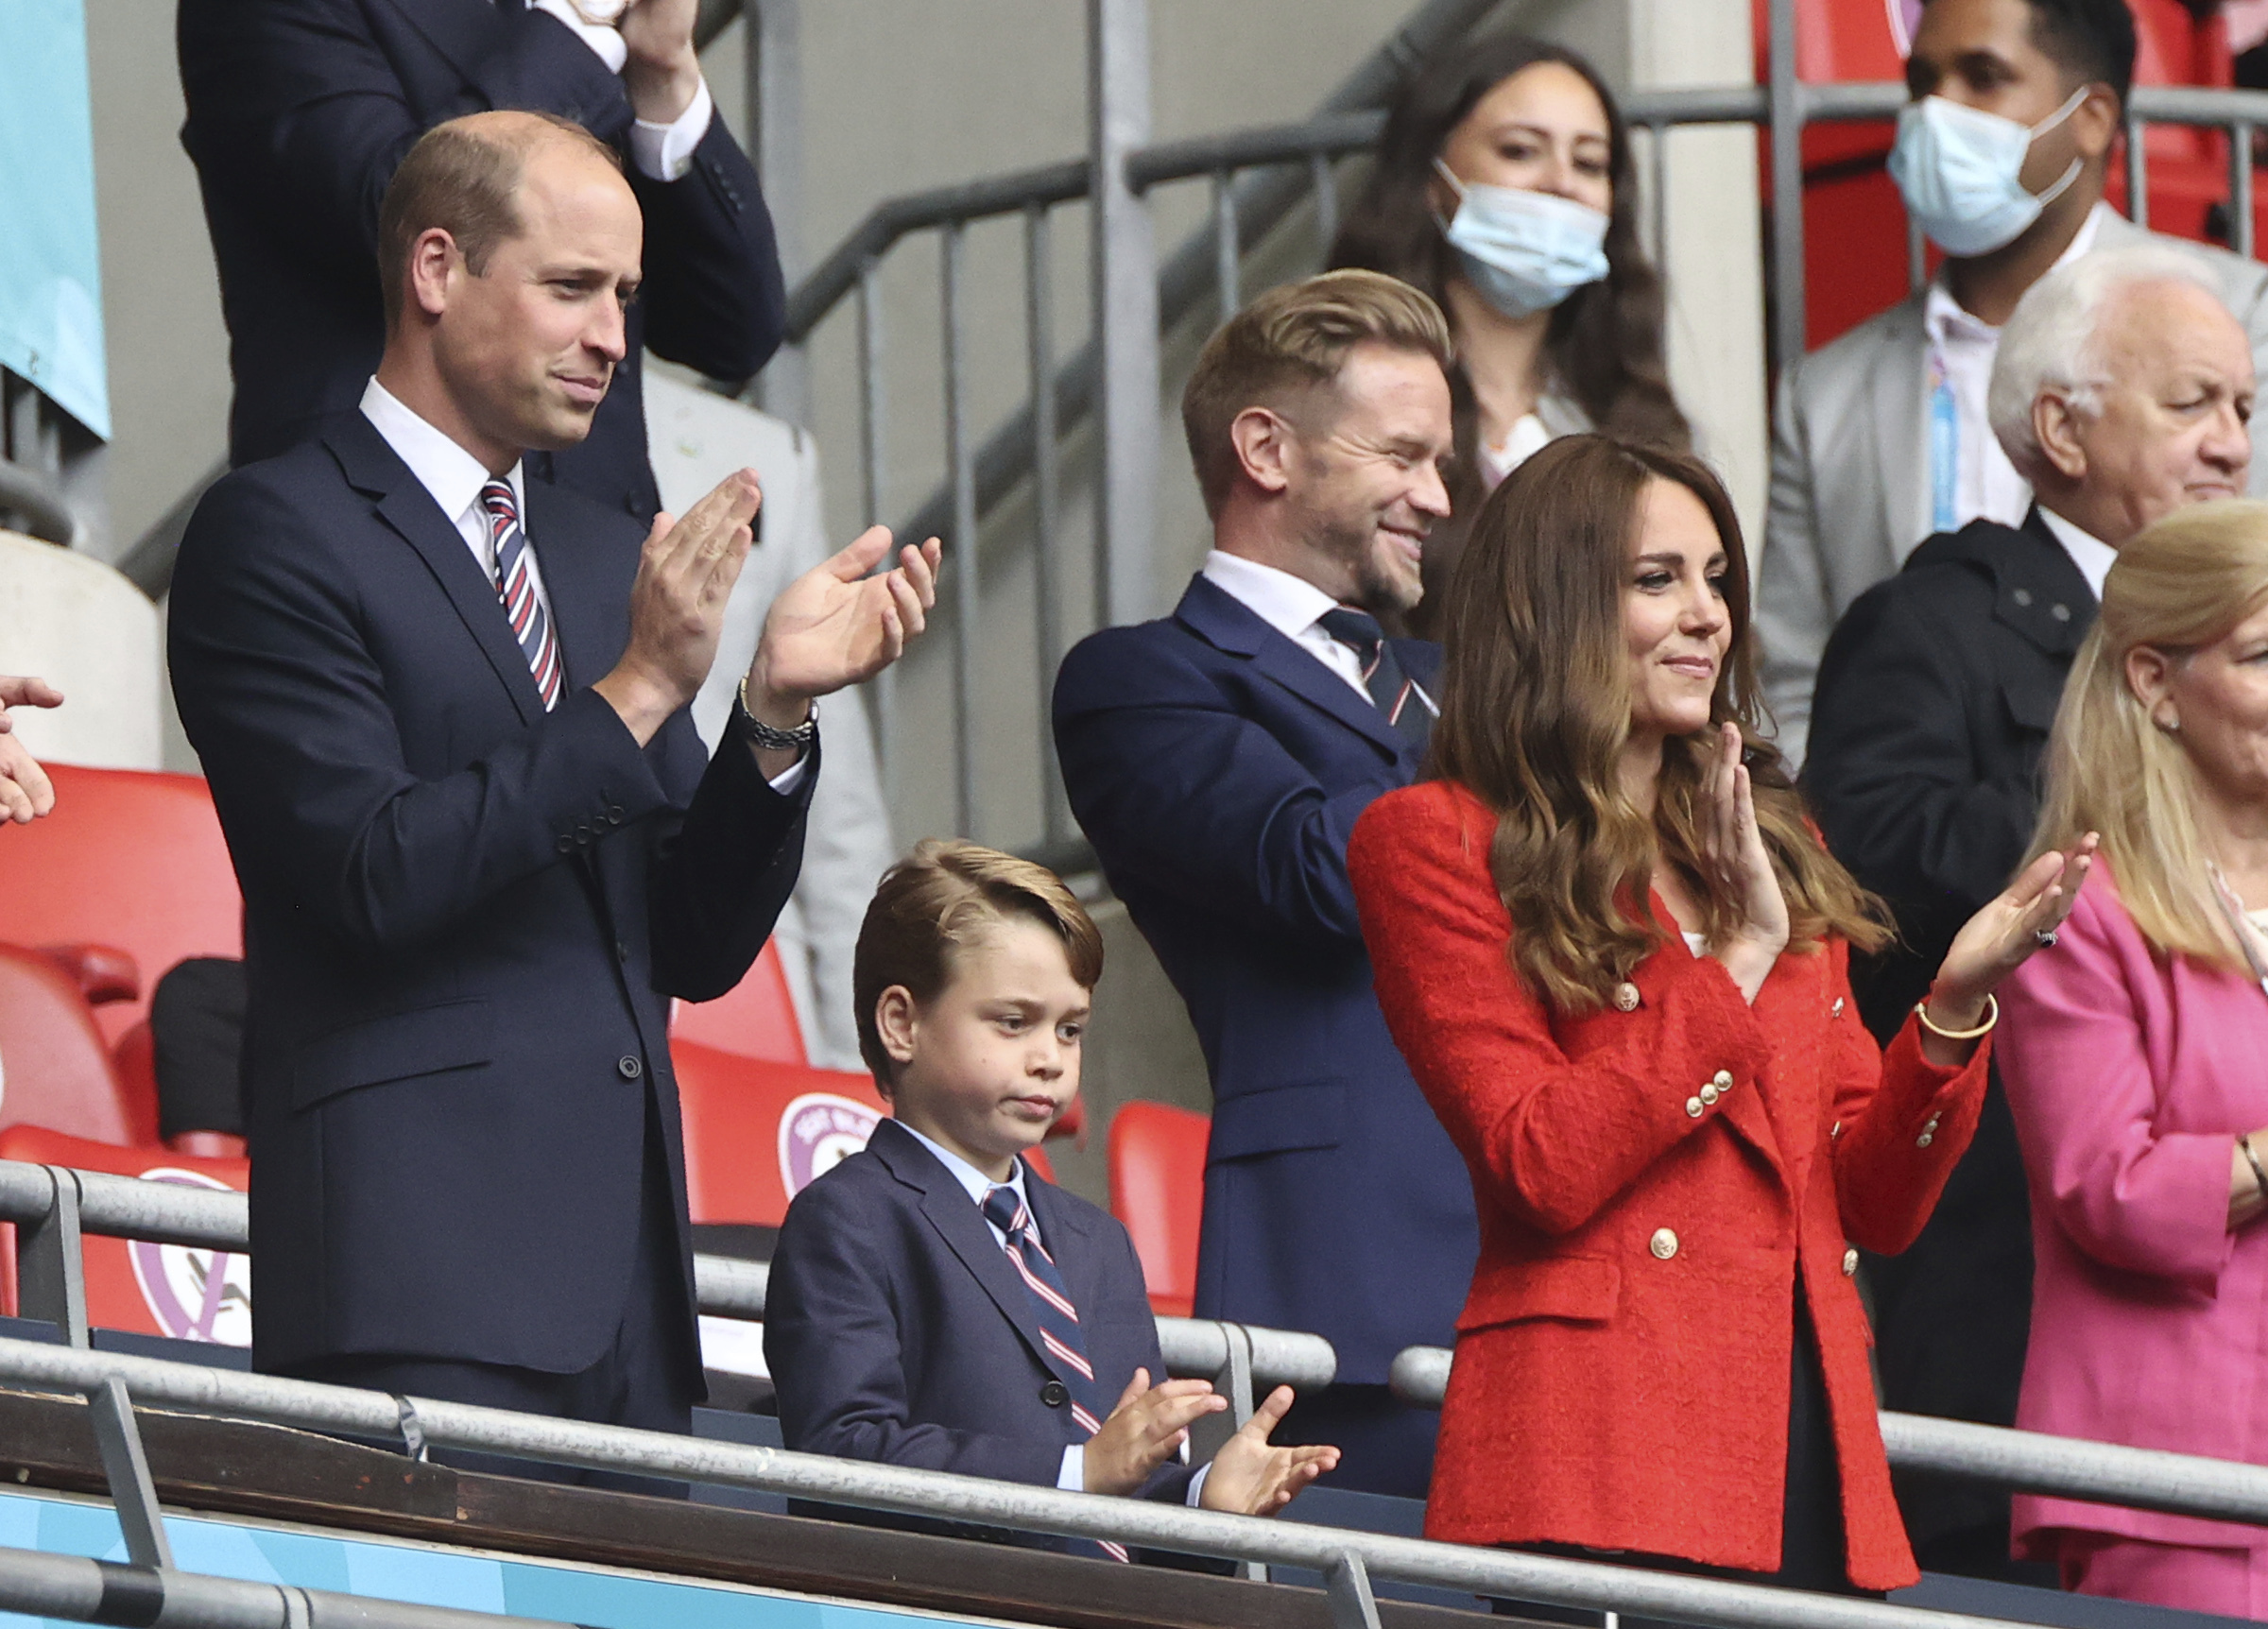 29 June 2021, United Kingdom, London: Football: European Championship, England - Germany, final round, round of 16 at Wembley Stadium. The British Prince William, Duke of Cambridge stands with his wife Kate, Duchess of Cambridge, and their son Prince George in the stands. Photo by: Christian Charisius/picture-alliance/dpa/AP Images